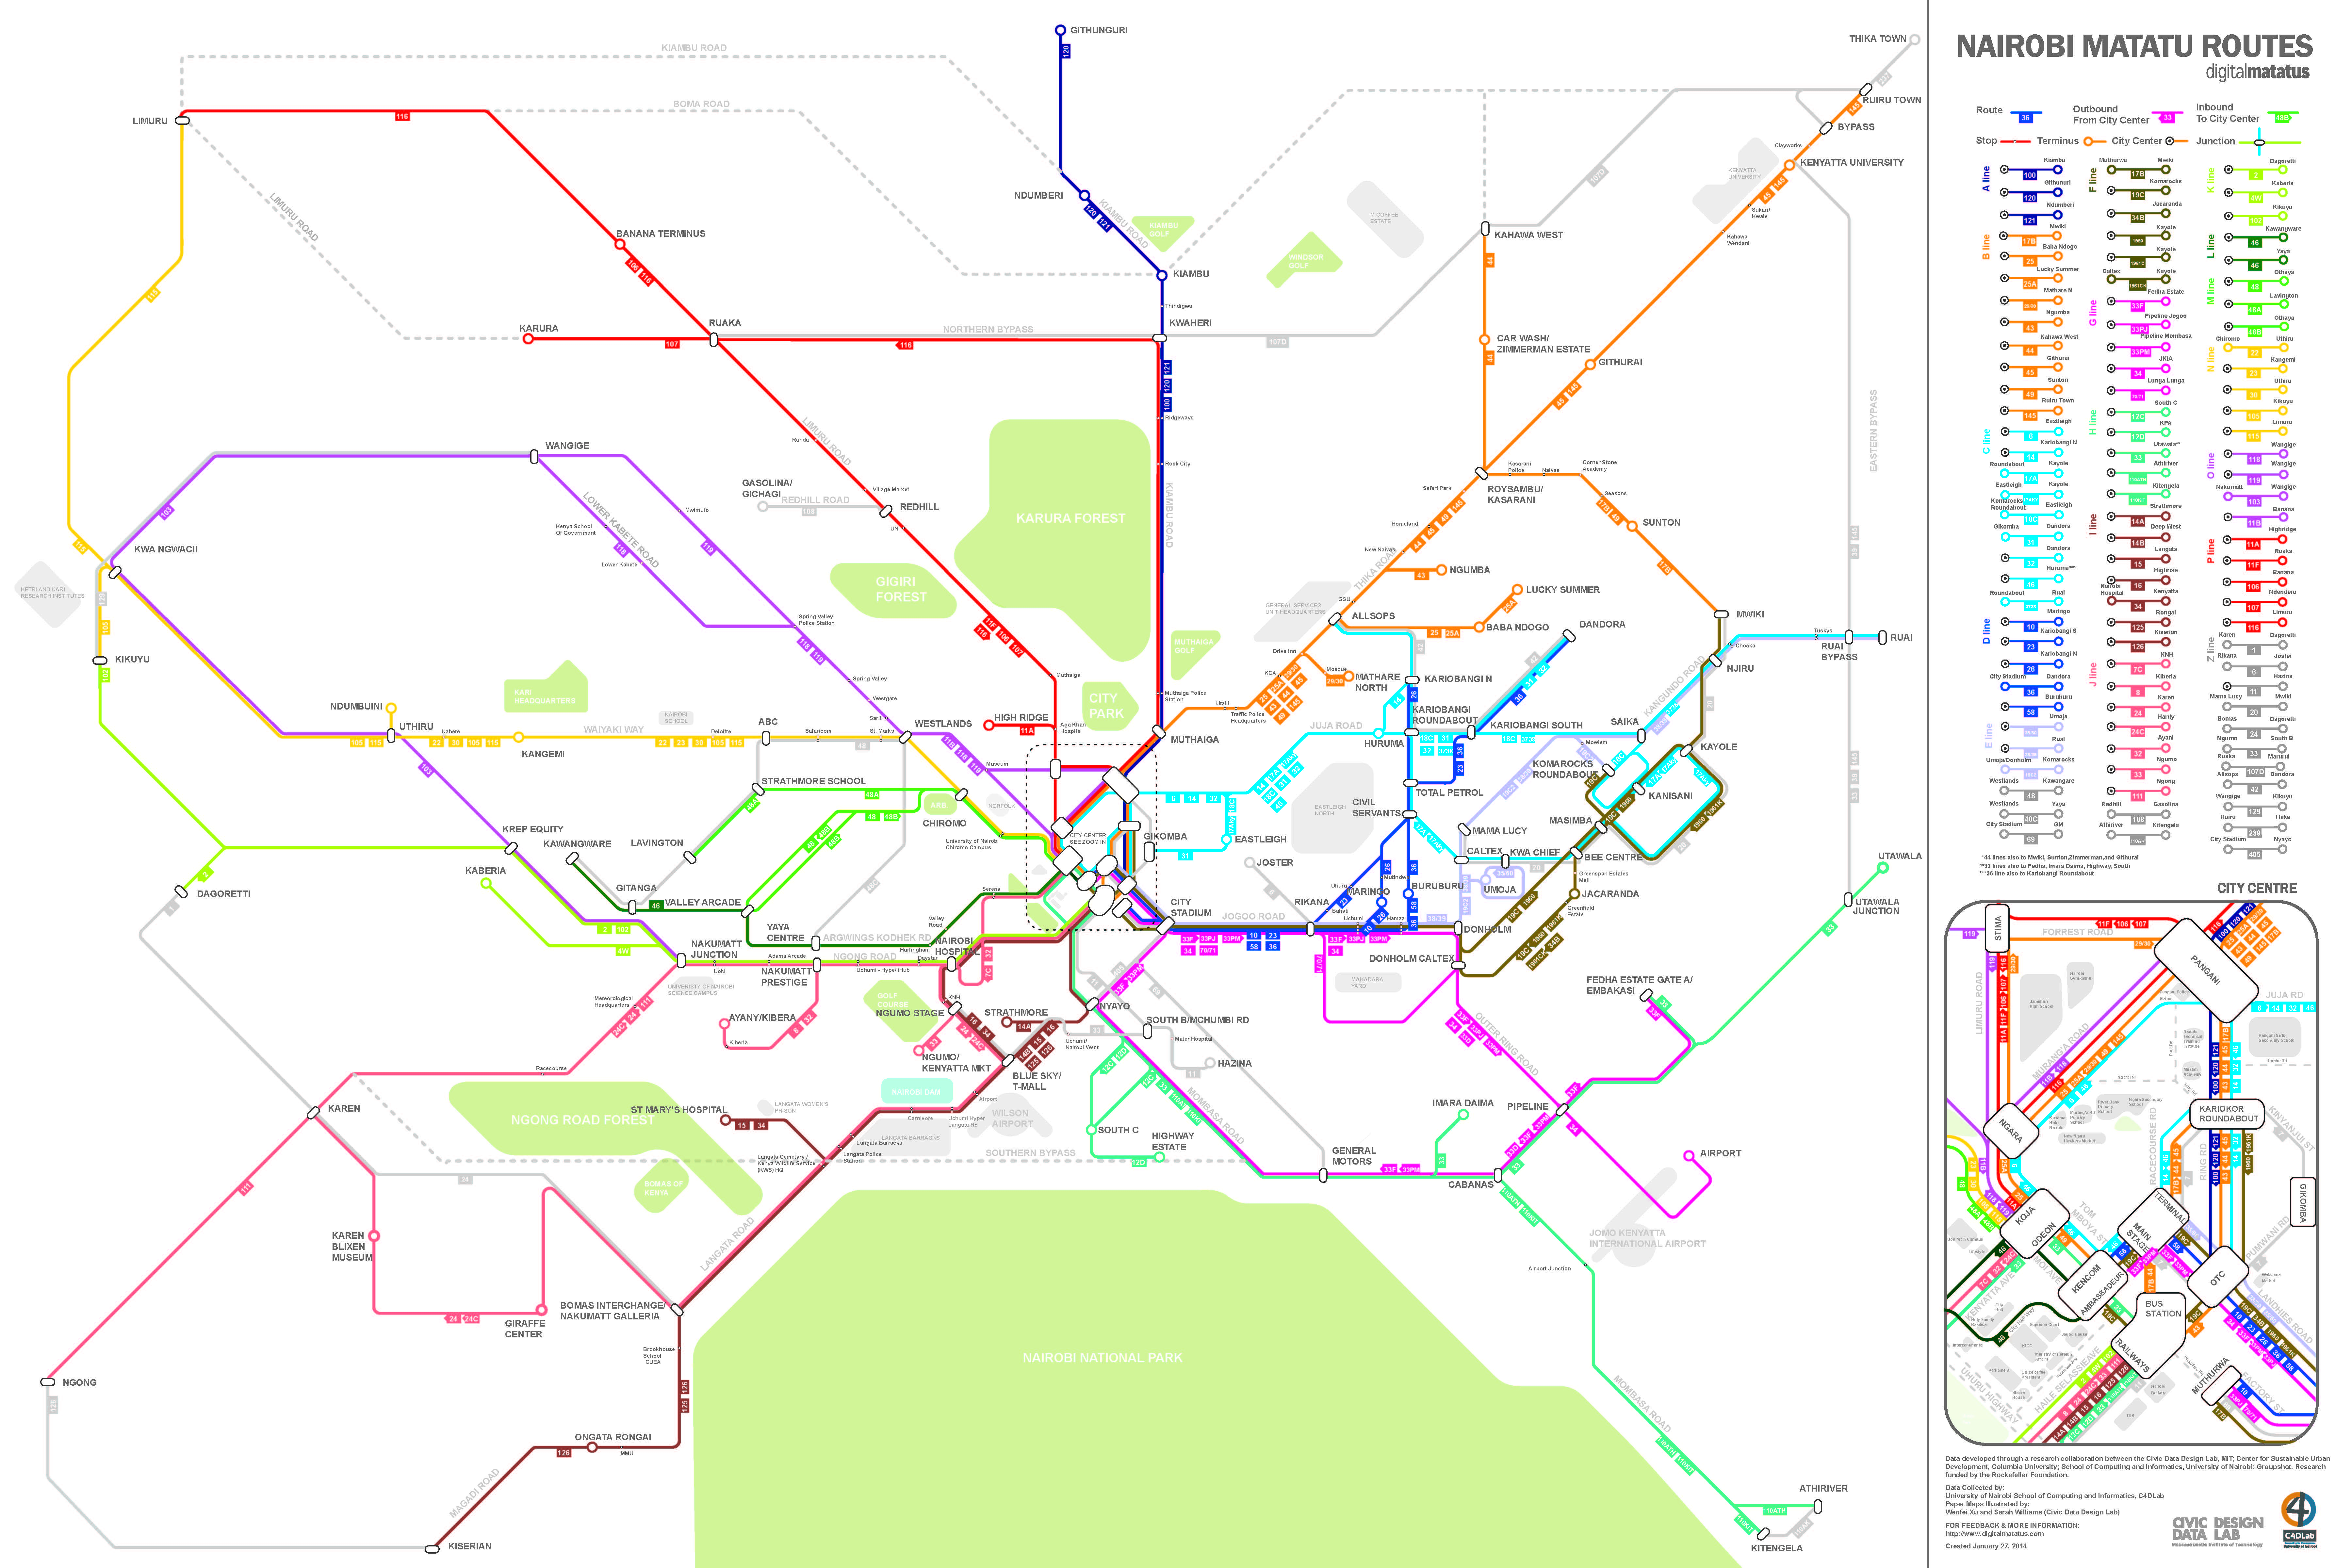 Researchers Map Nairobis Informal Bus System MIT Spectrum - Gps map data